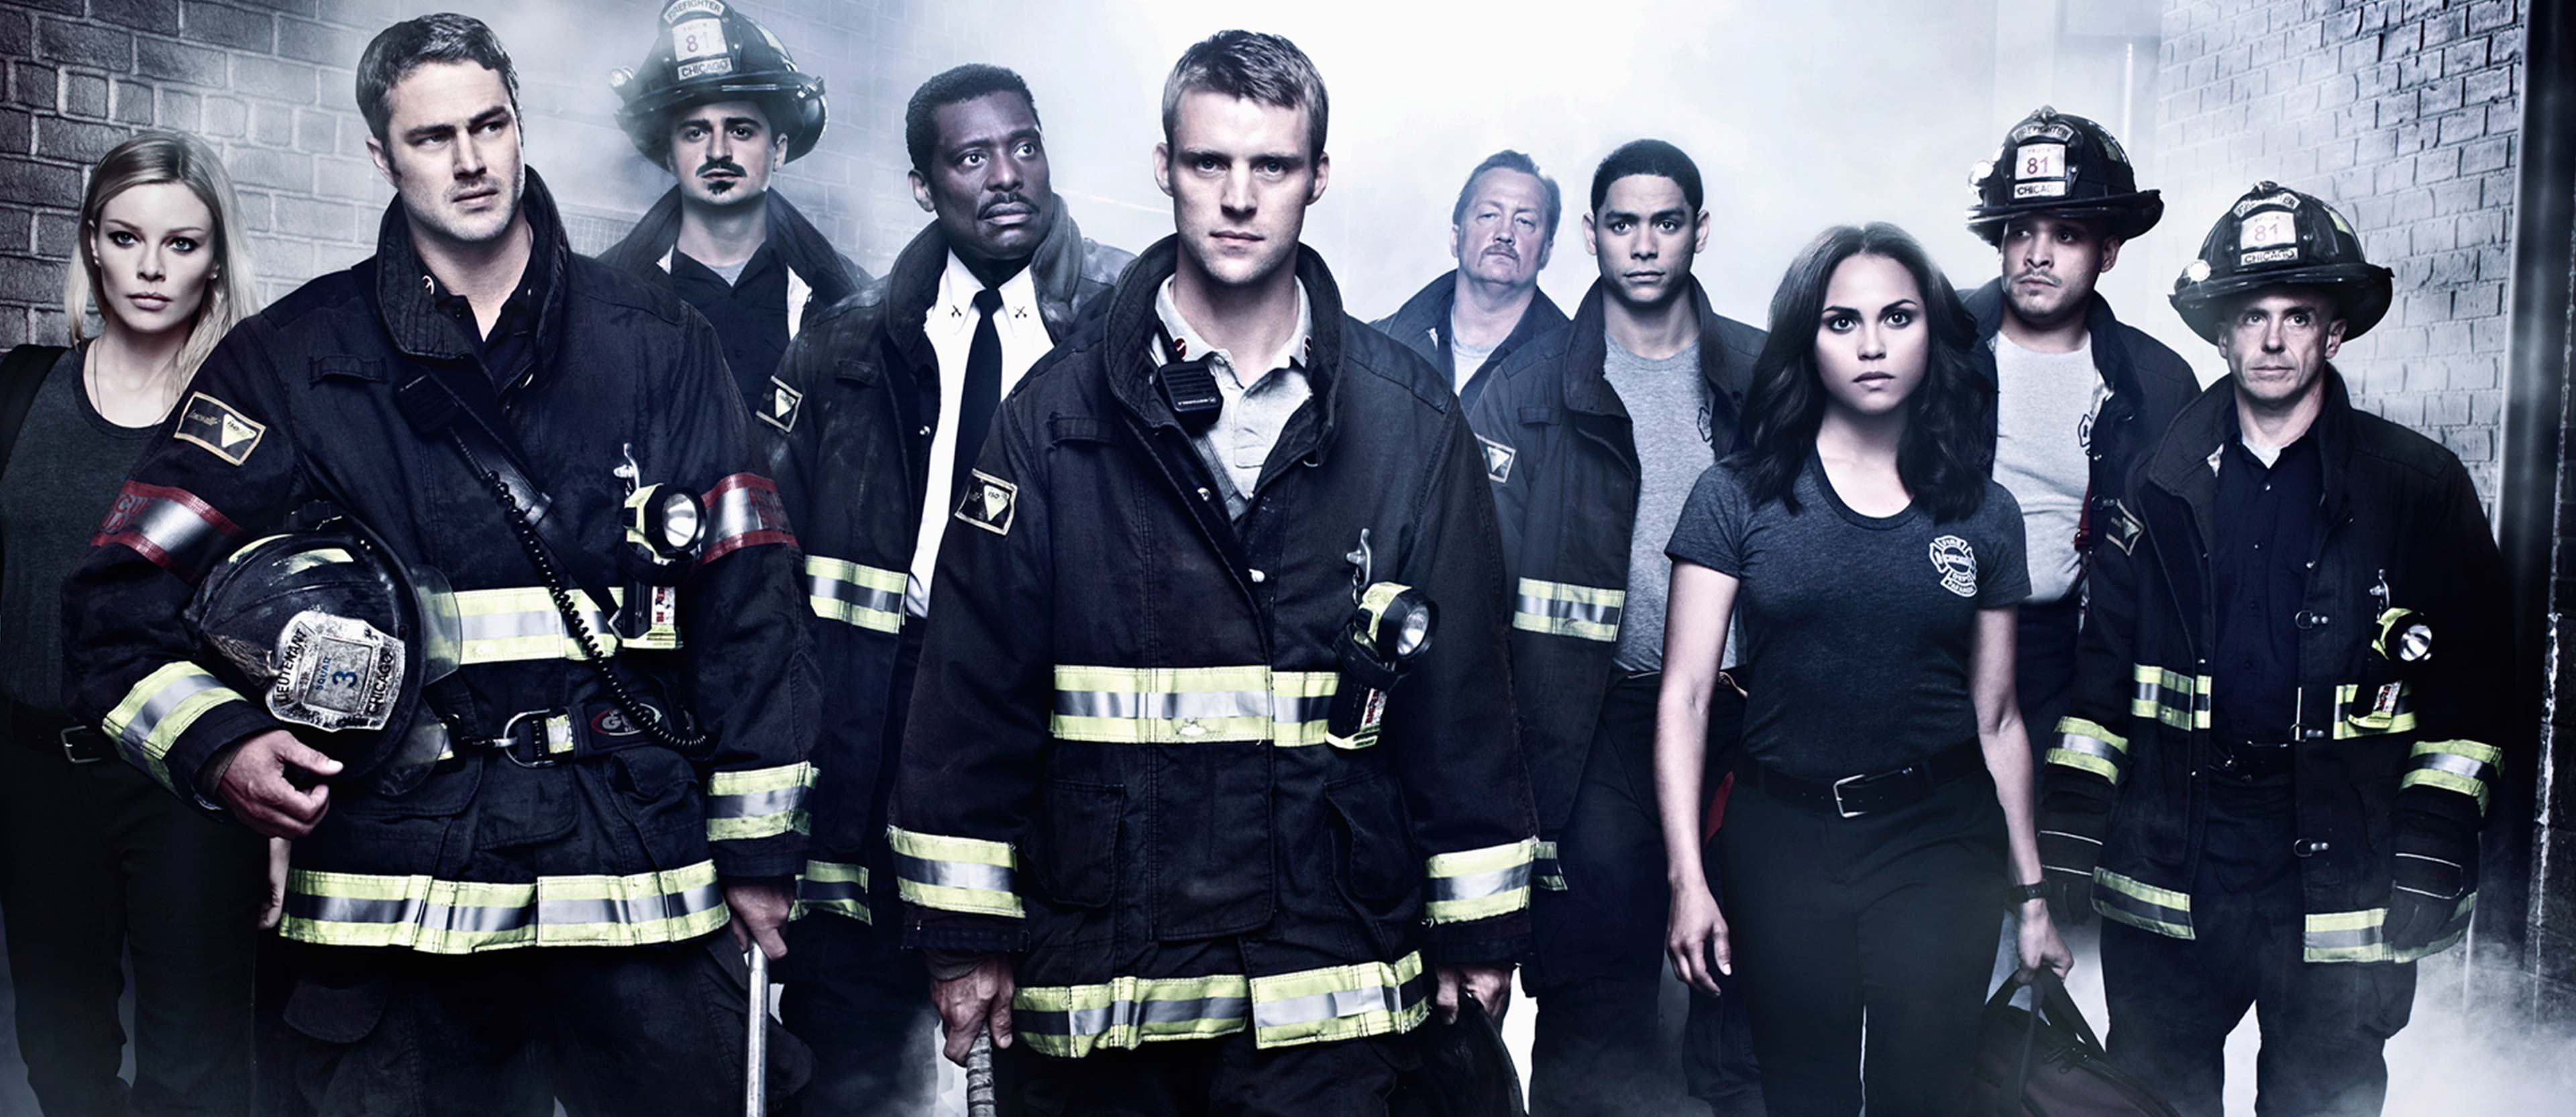 Jesse Spencer stars in Chicago Fire on NBC (USA) & FOX8 (Australia)